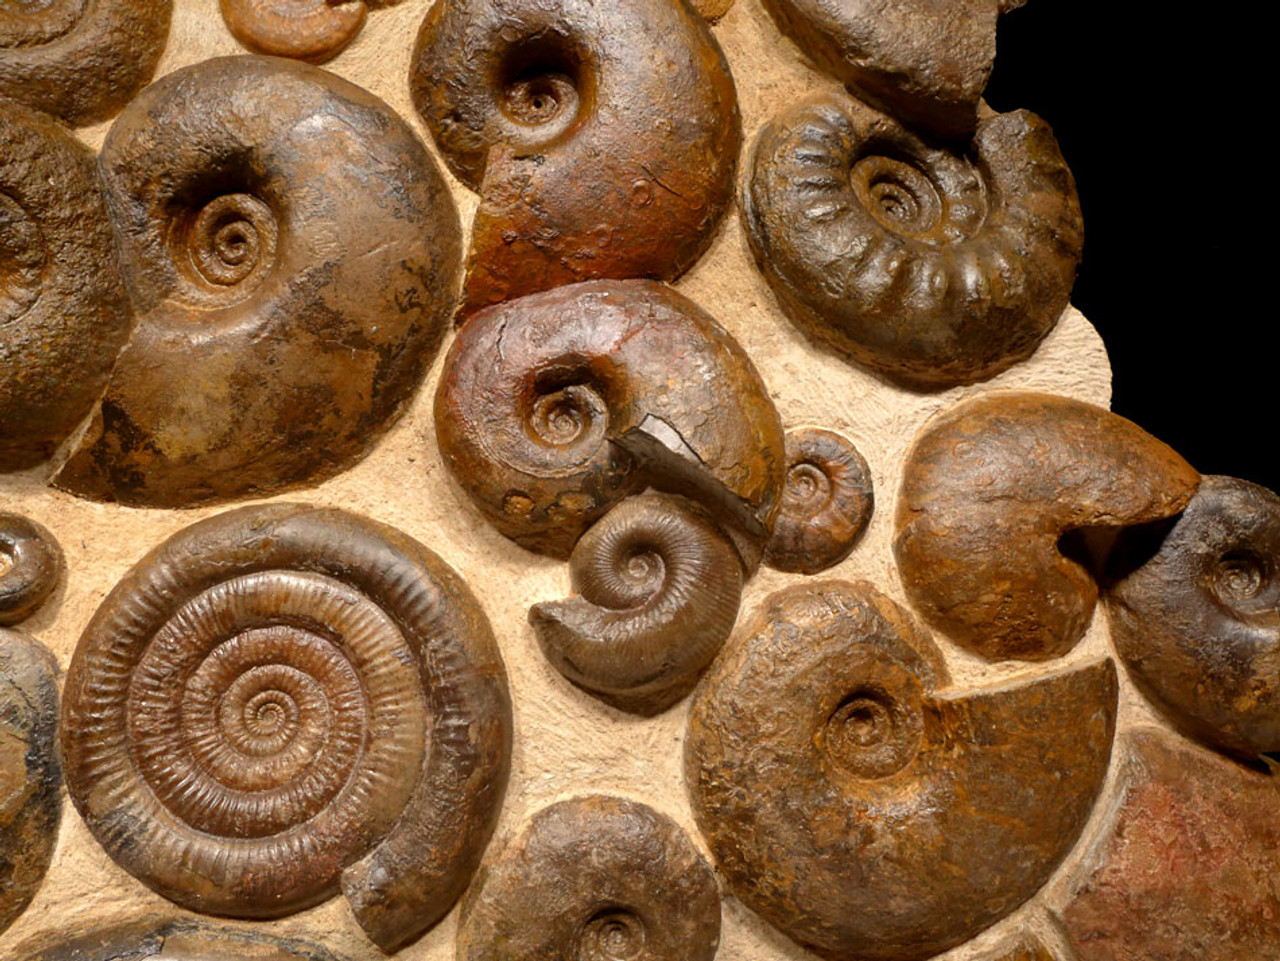 """AMX331 - MASSIVE 36"""" AMMONITE WALL FILLED WITH 28 RARE JURASSIC OCEAN LIFE FOSSILS OF SUPERB PRESERVATION"""